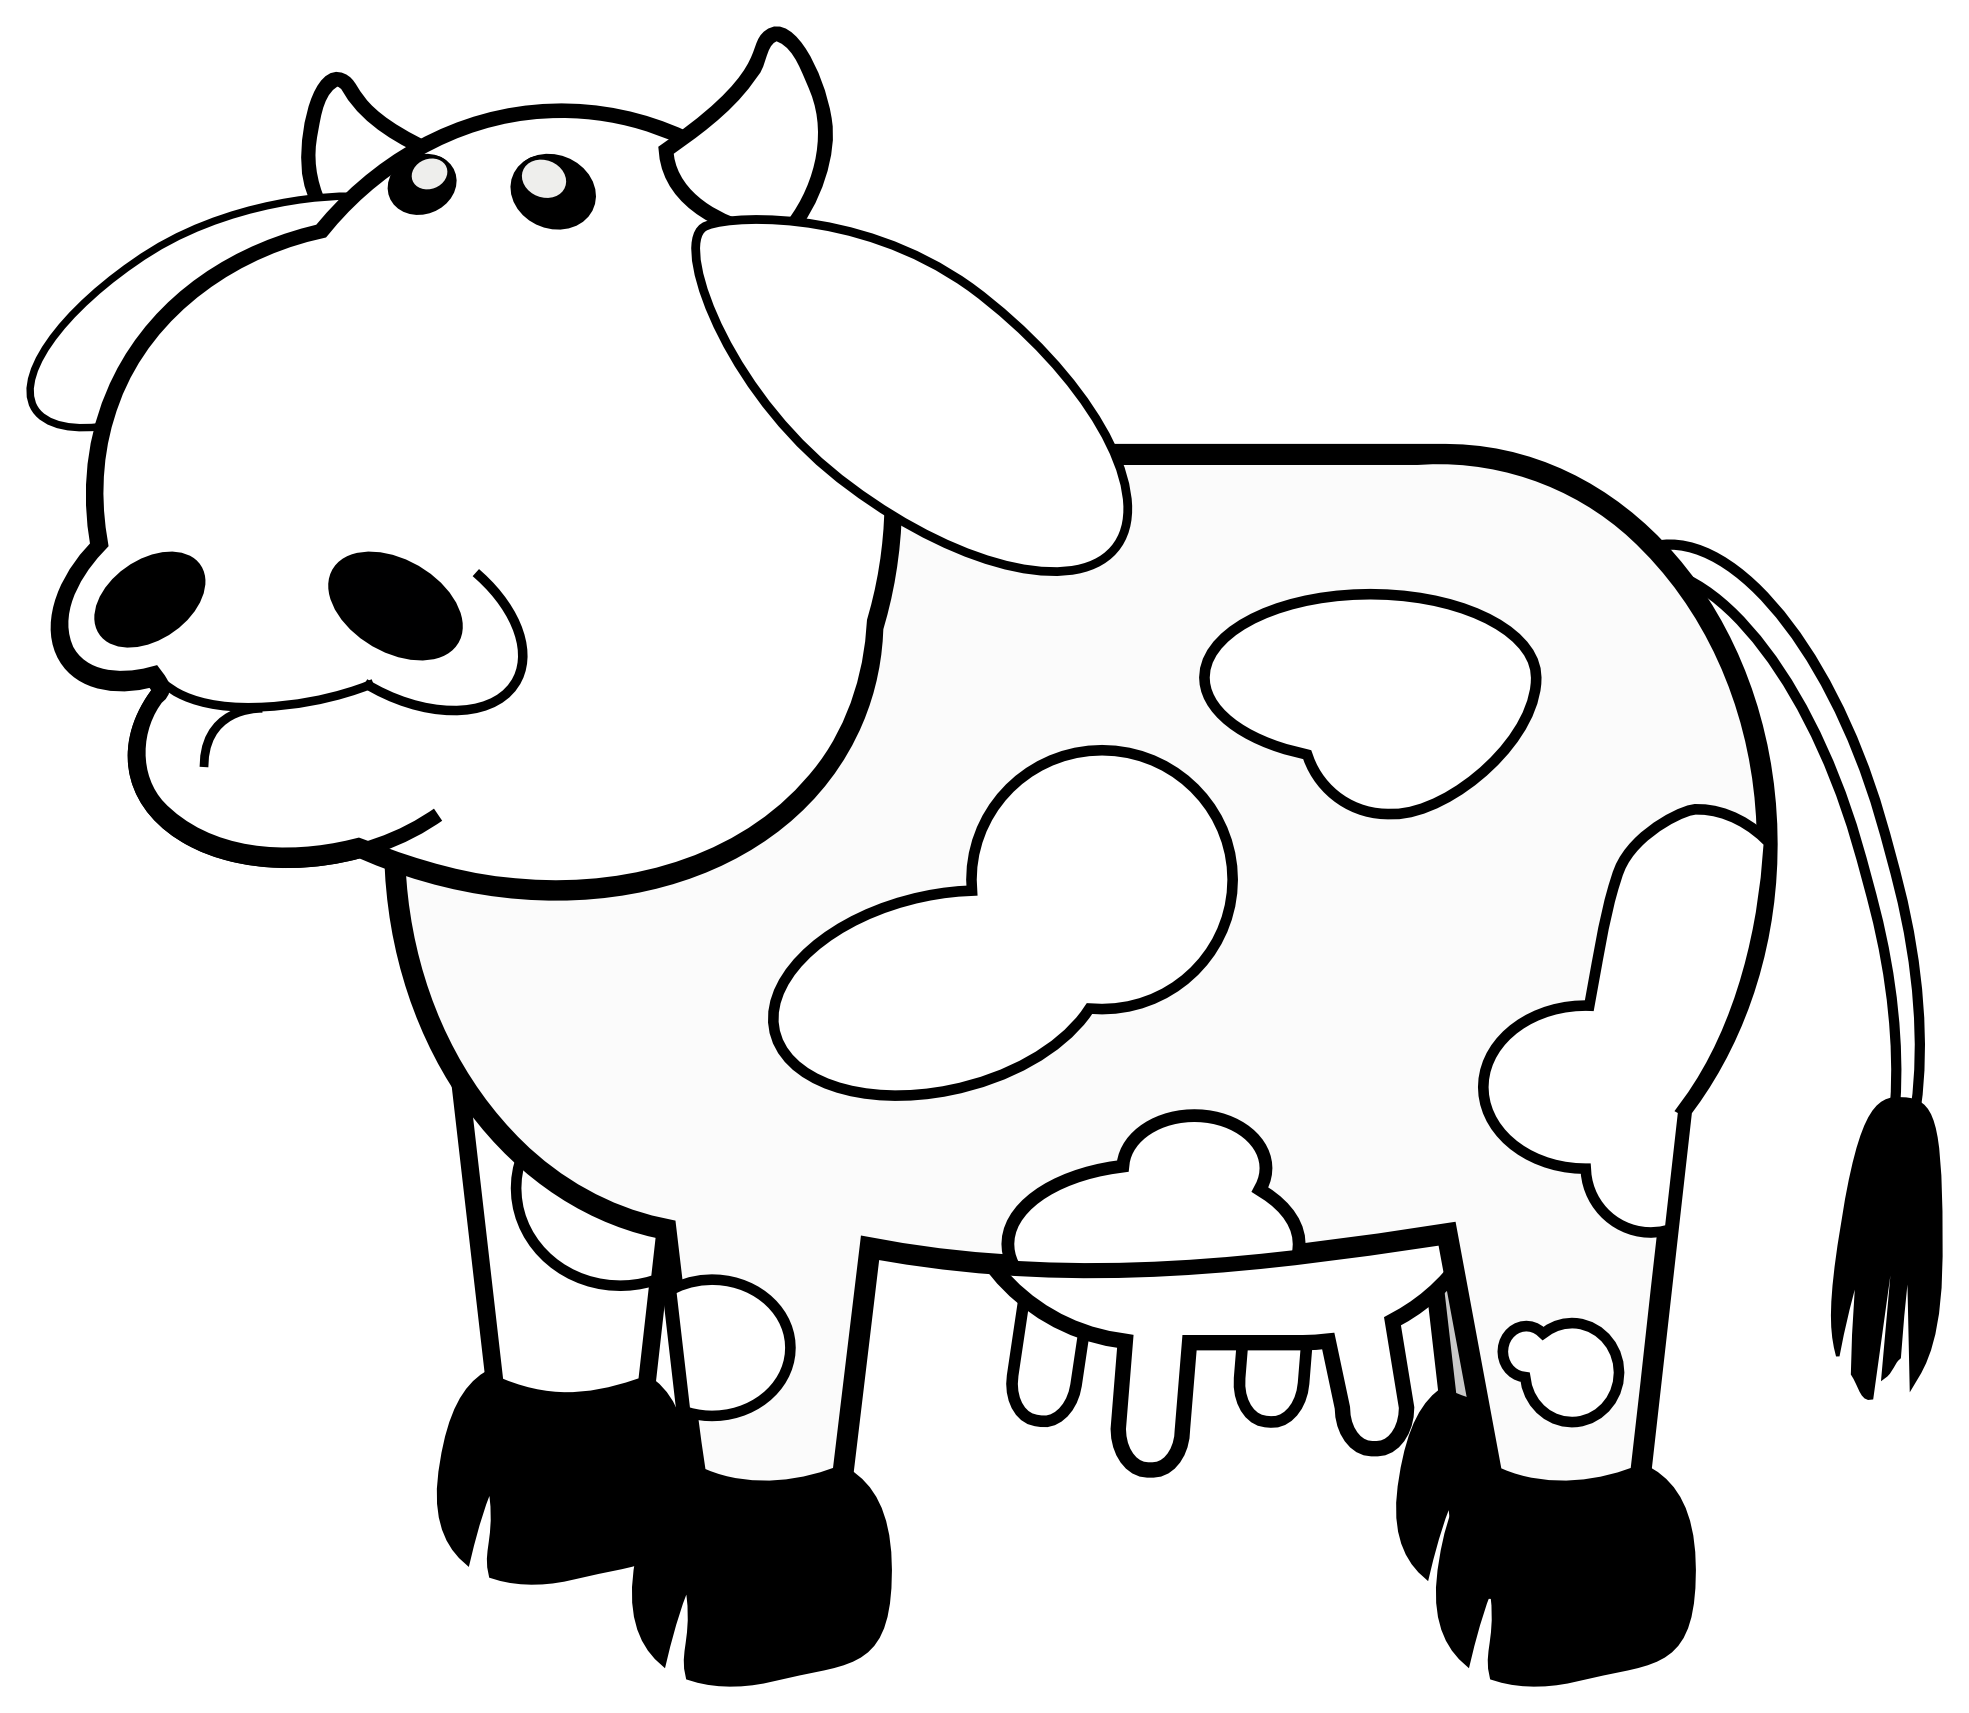 Snake Clipart Black And White Colour Cows 1 Black White Line Art Svg